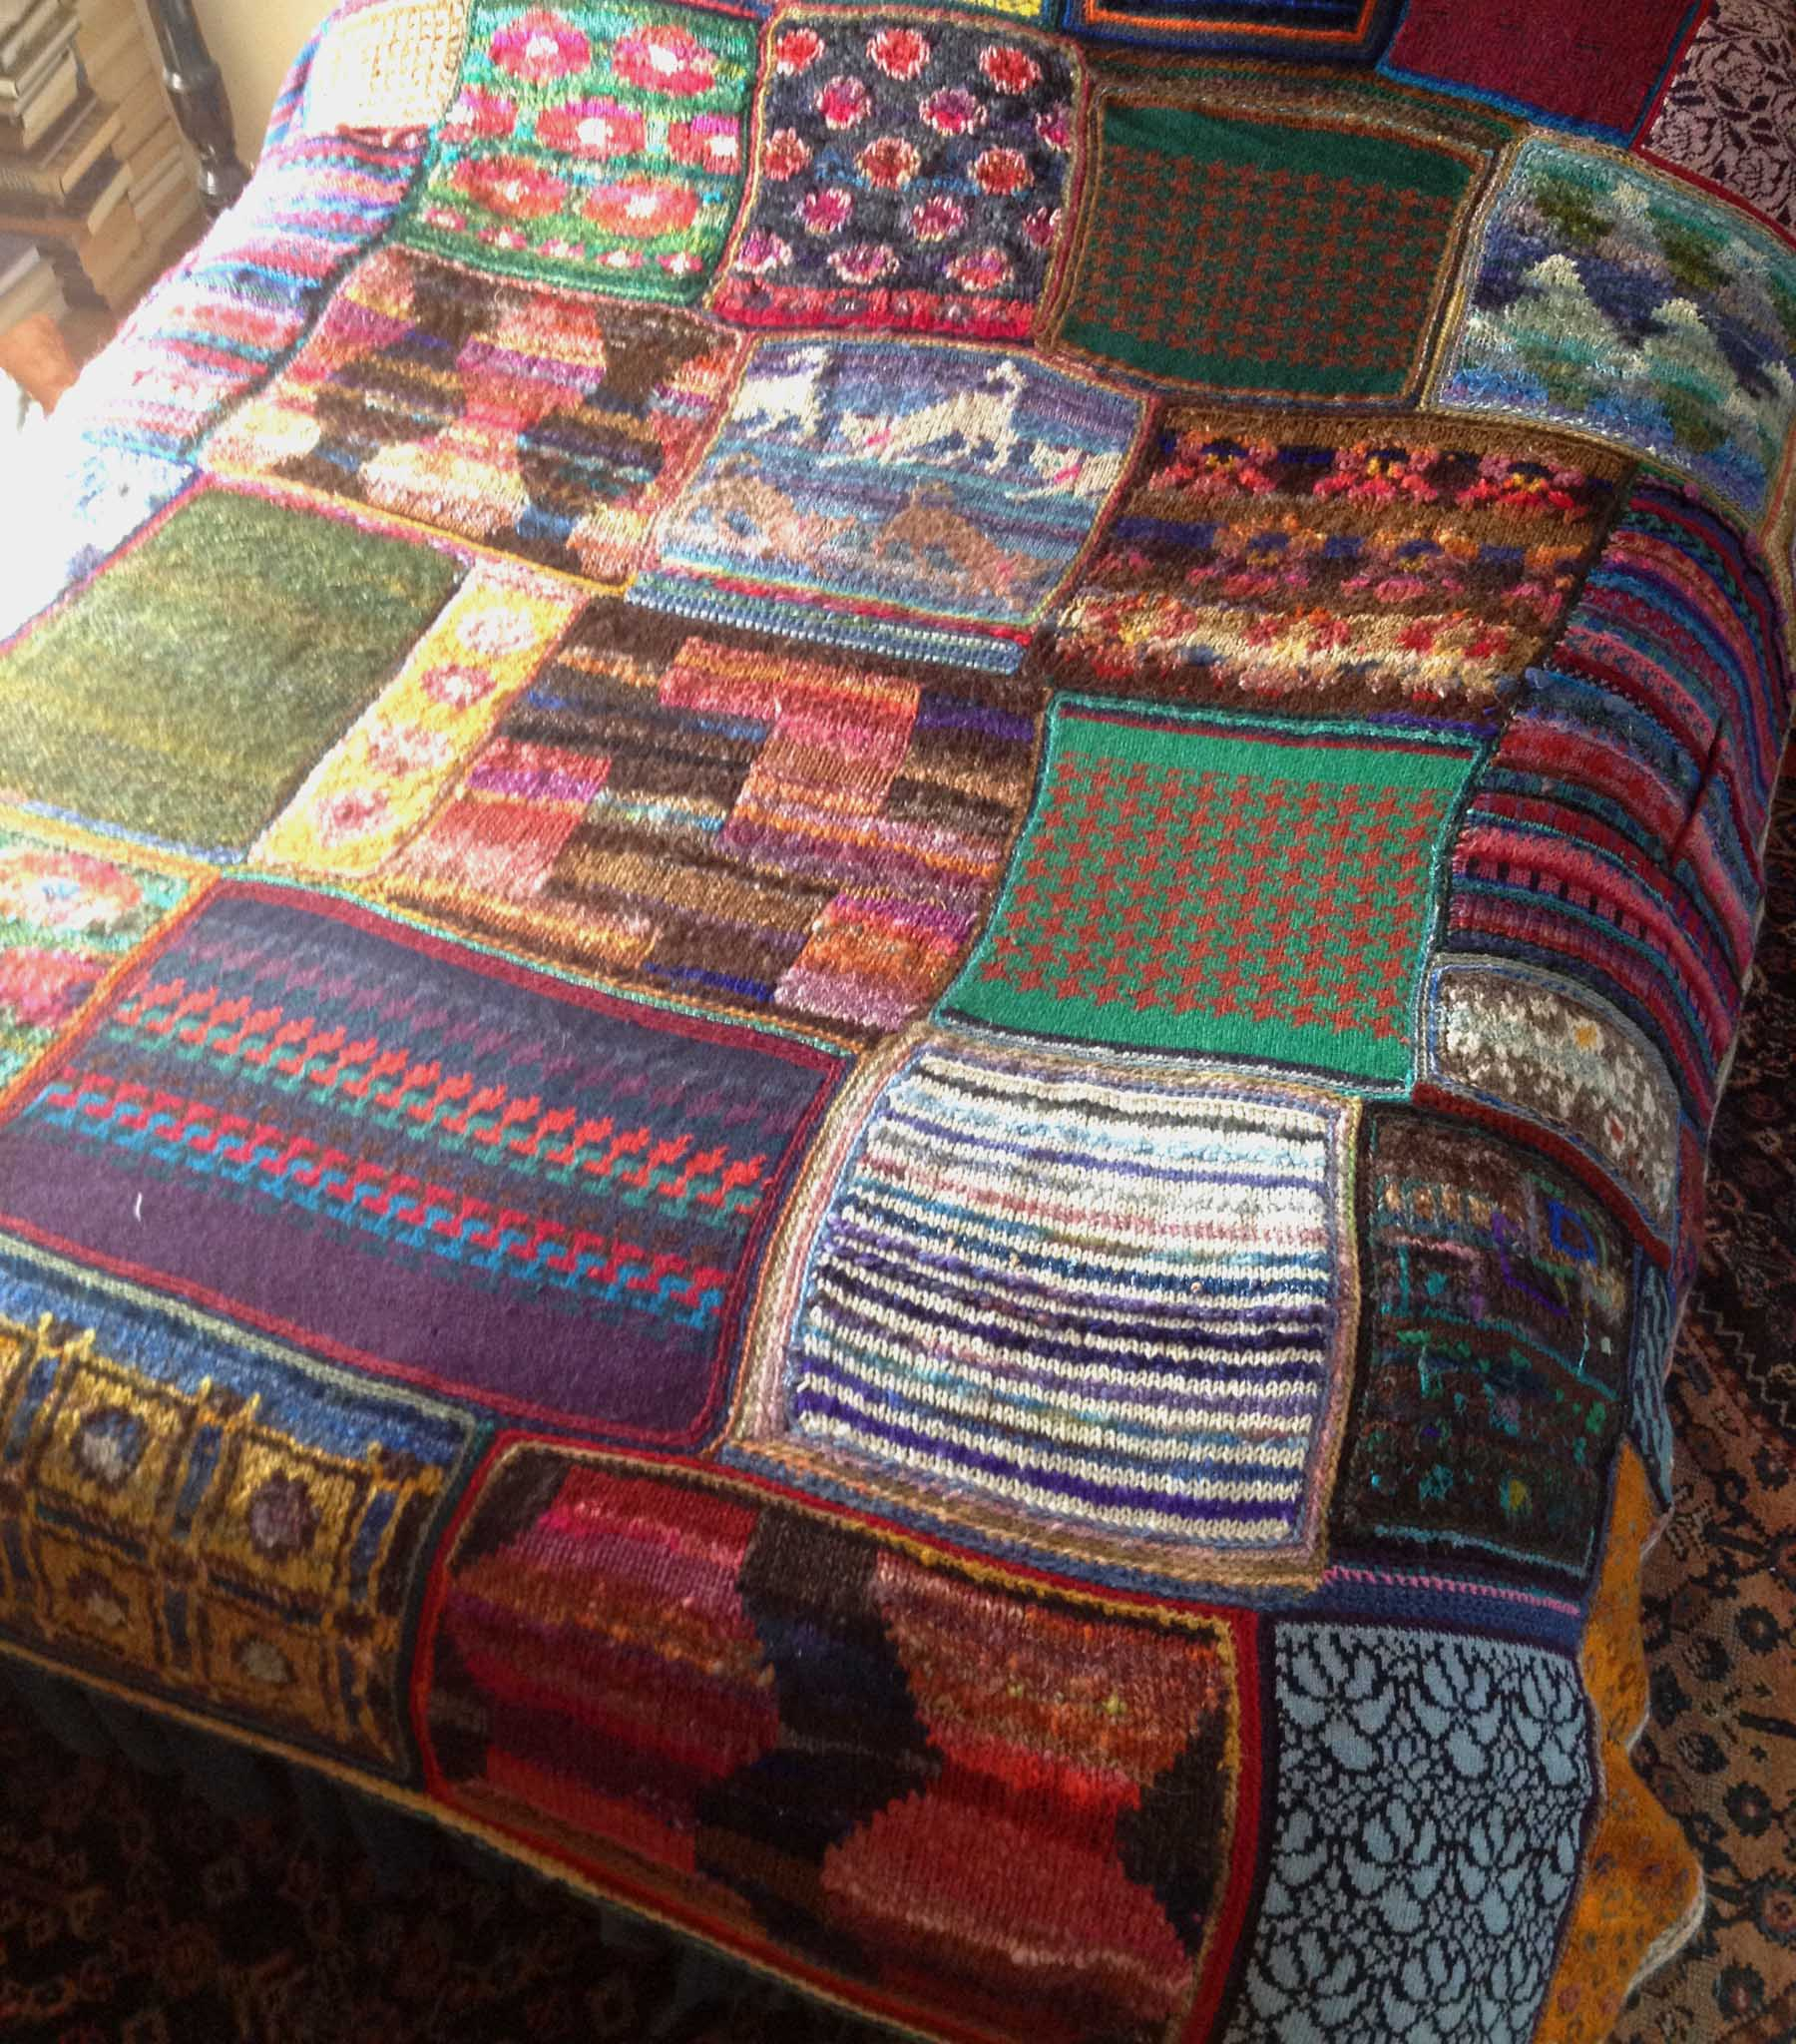 Knitting Patchwork Quilt Patterns : Our knitted patchwork blanket something from seaview